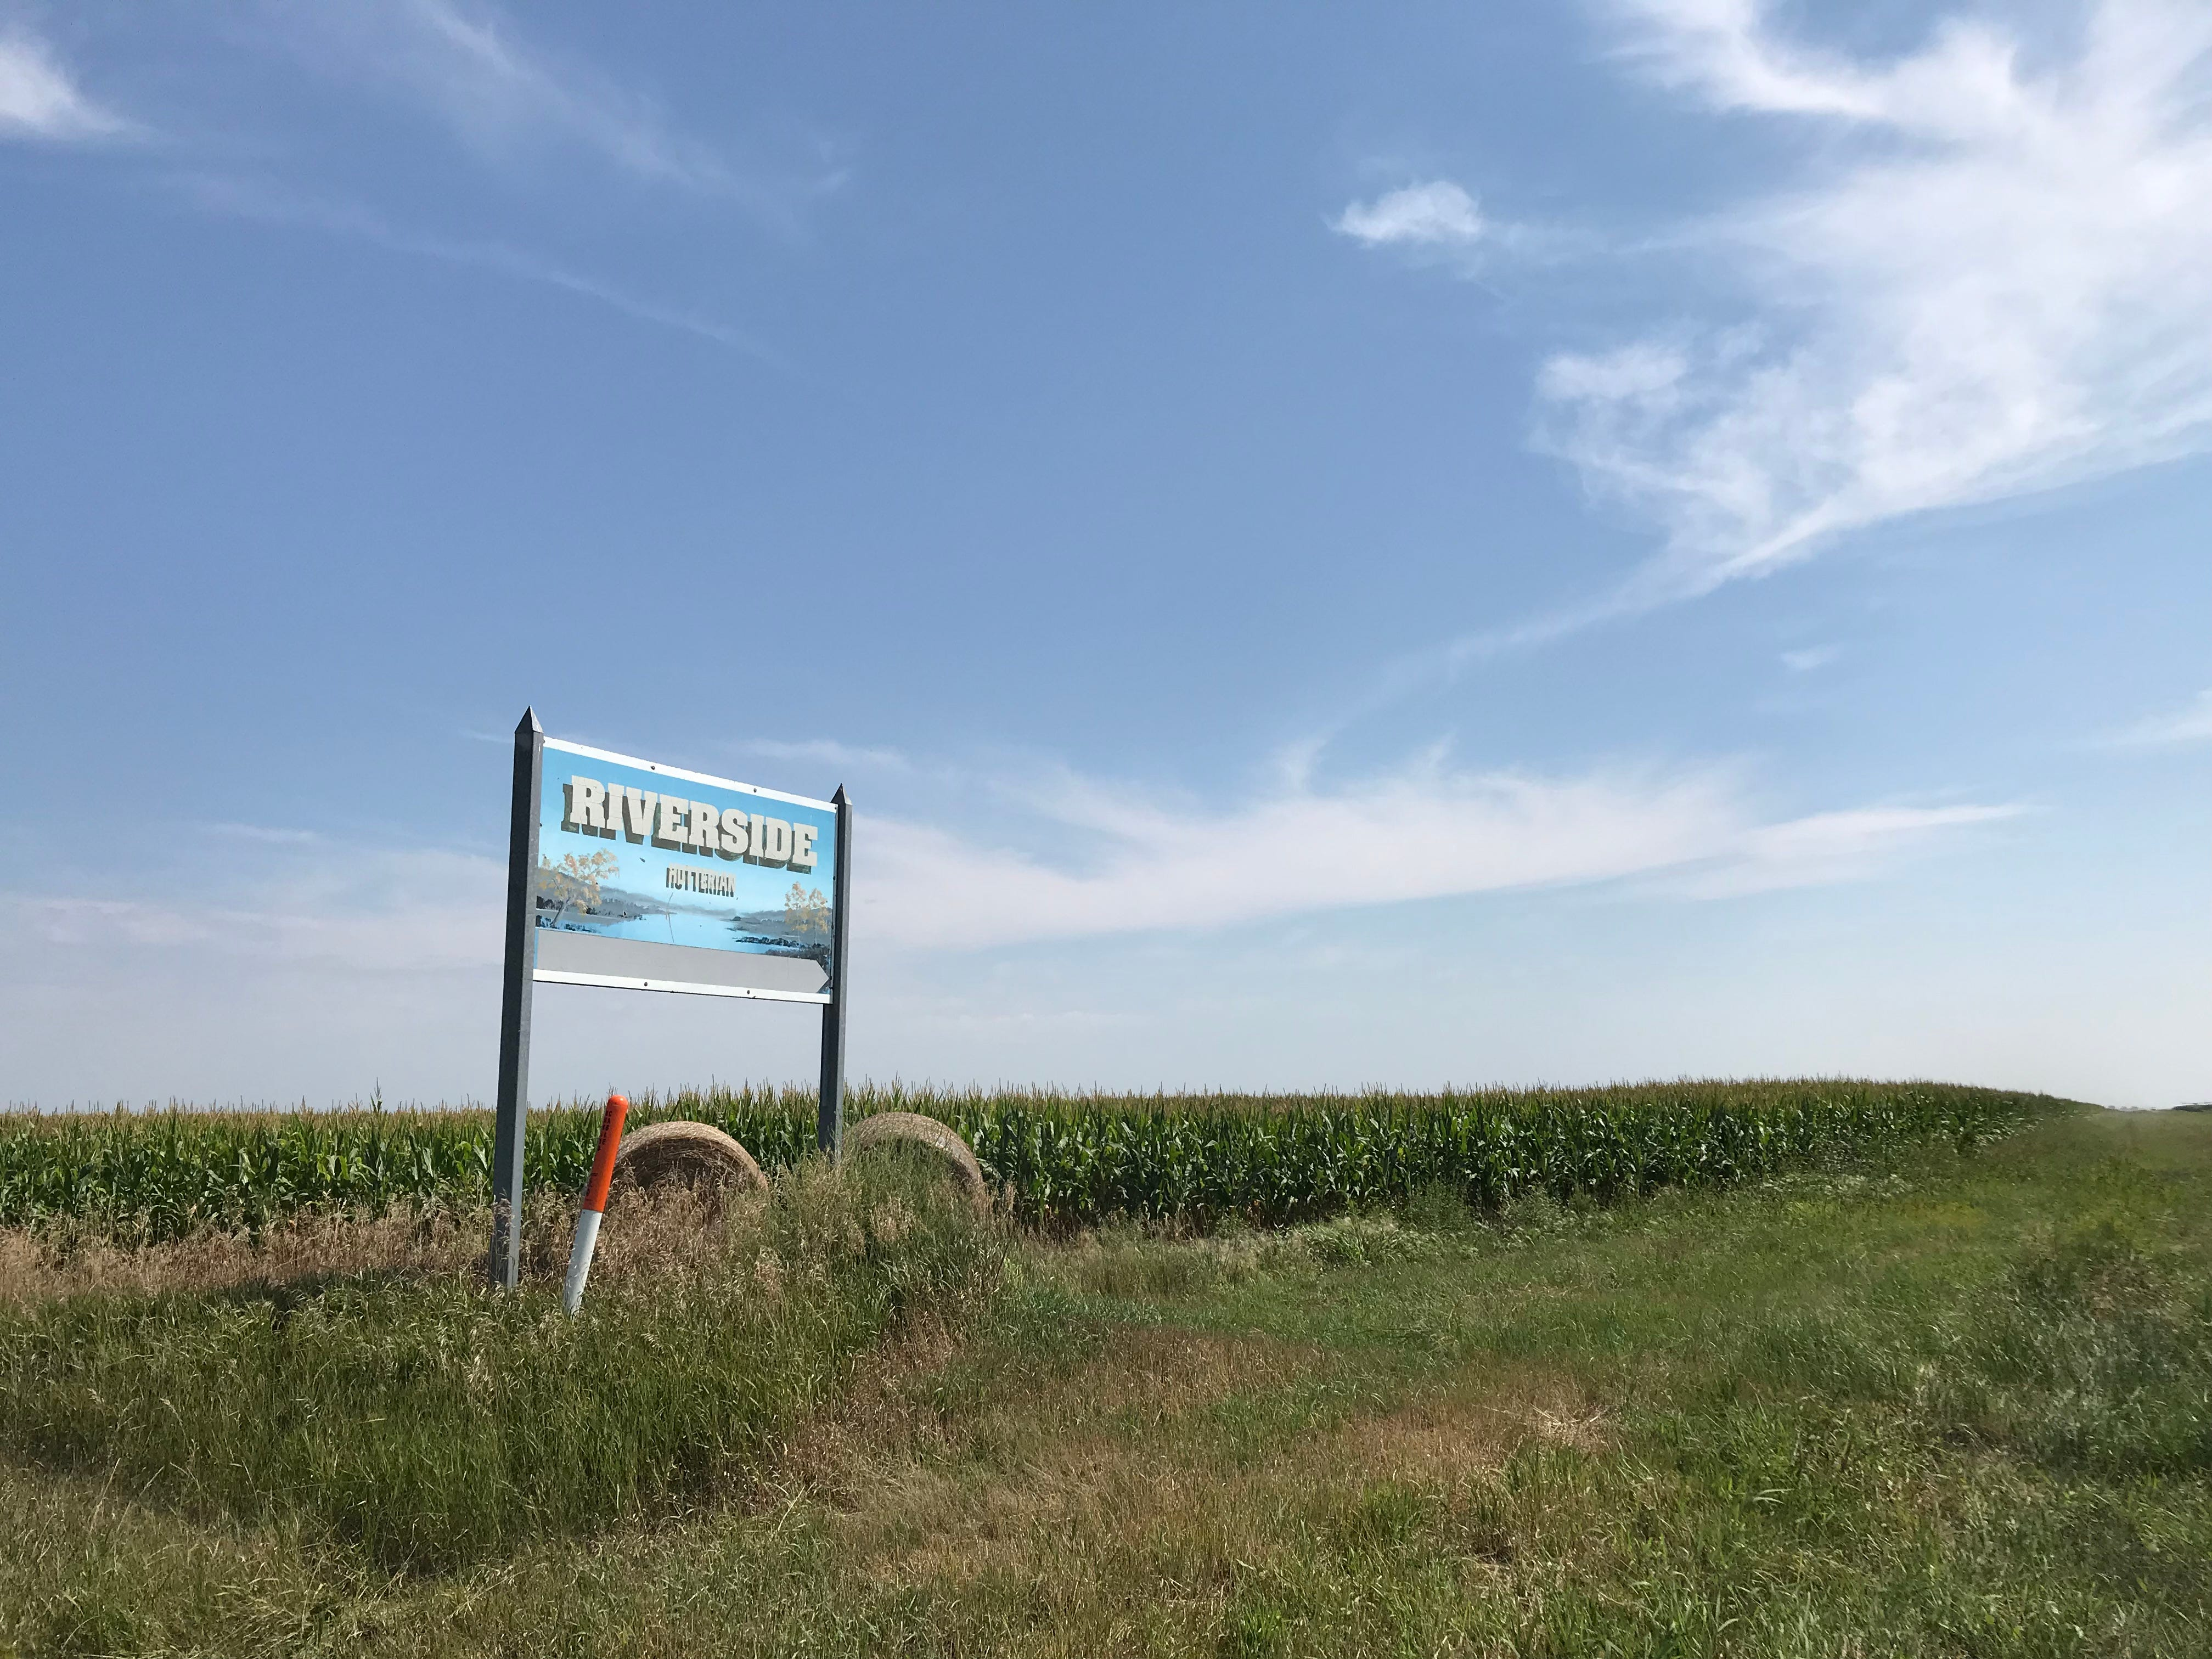 The sign for the Riverside colony and turkey farm, home to South Dakota's first-ever National Thanksiving Turkey.